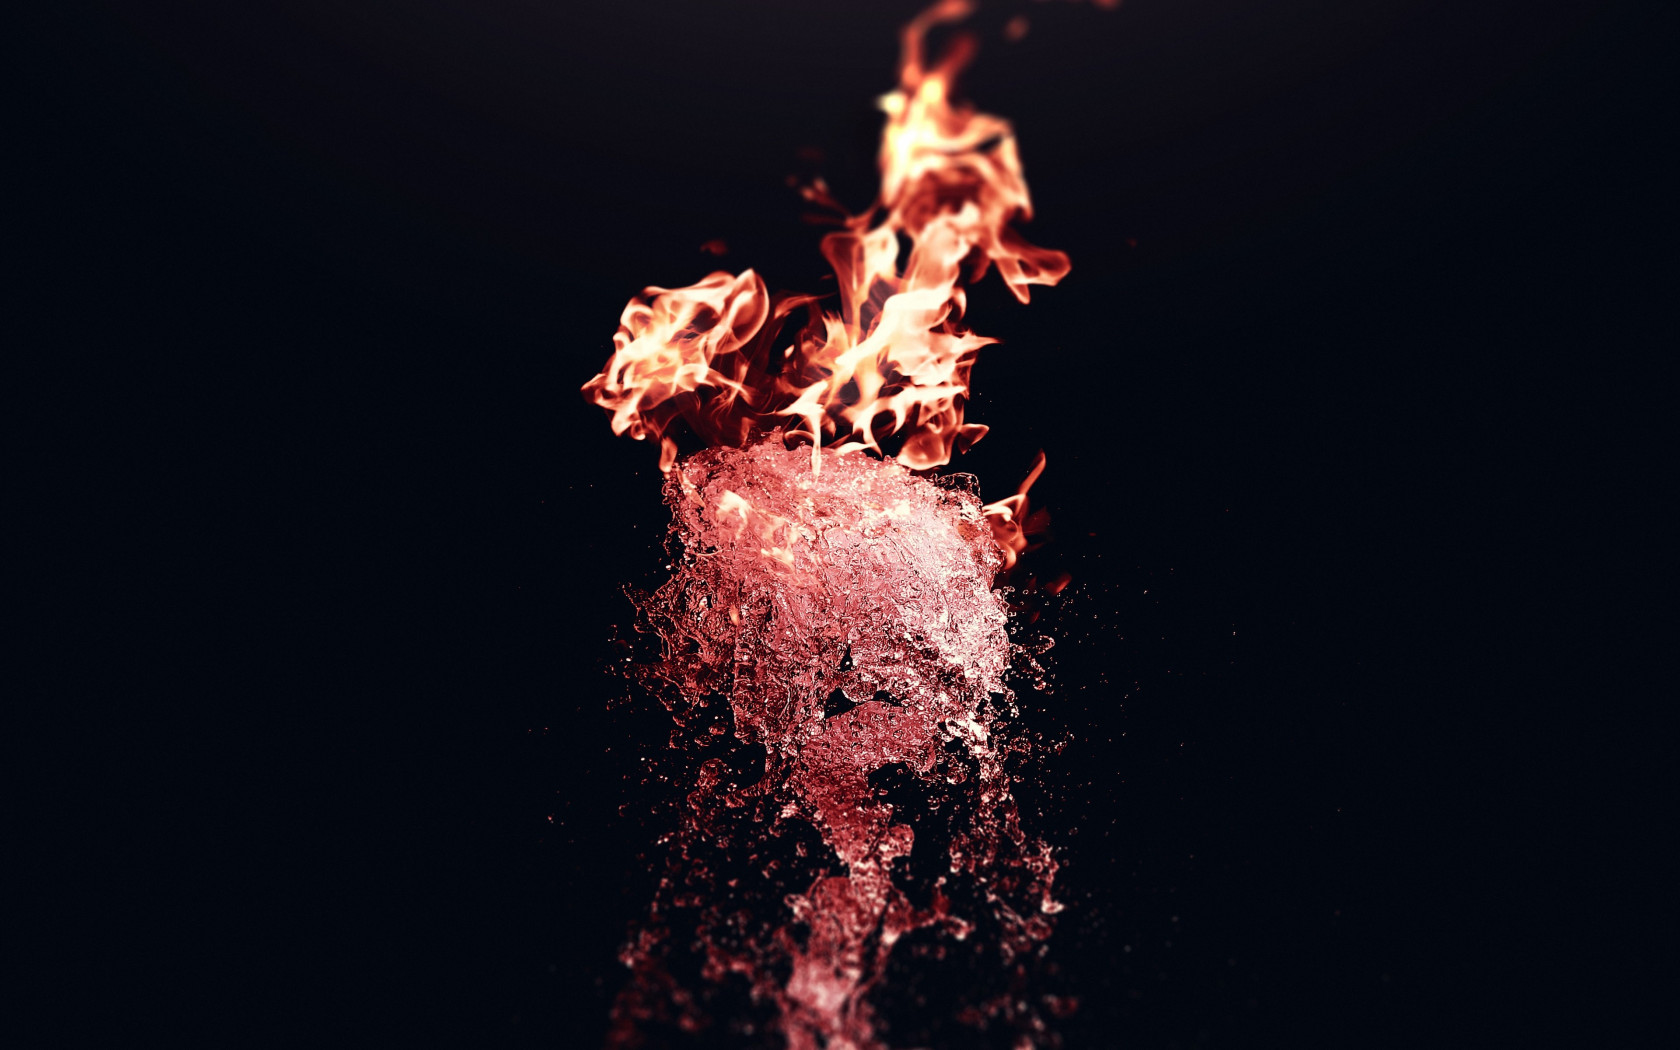 Fire vs Water wallpaper 1680x1050